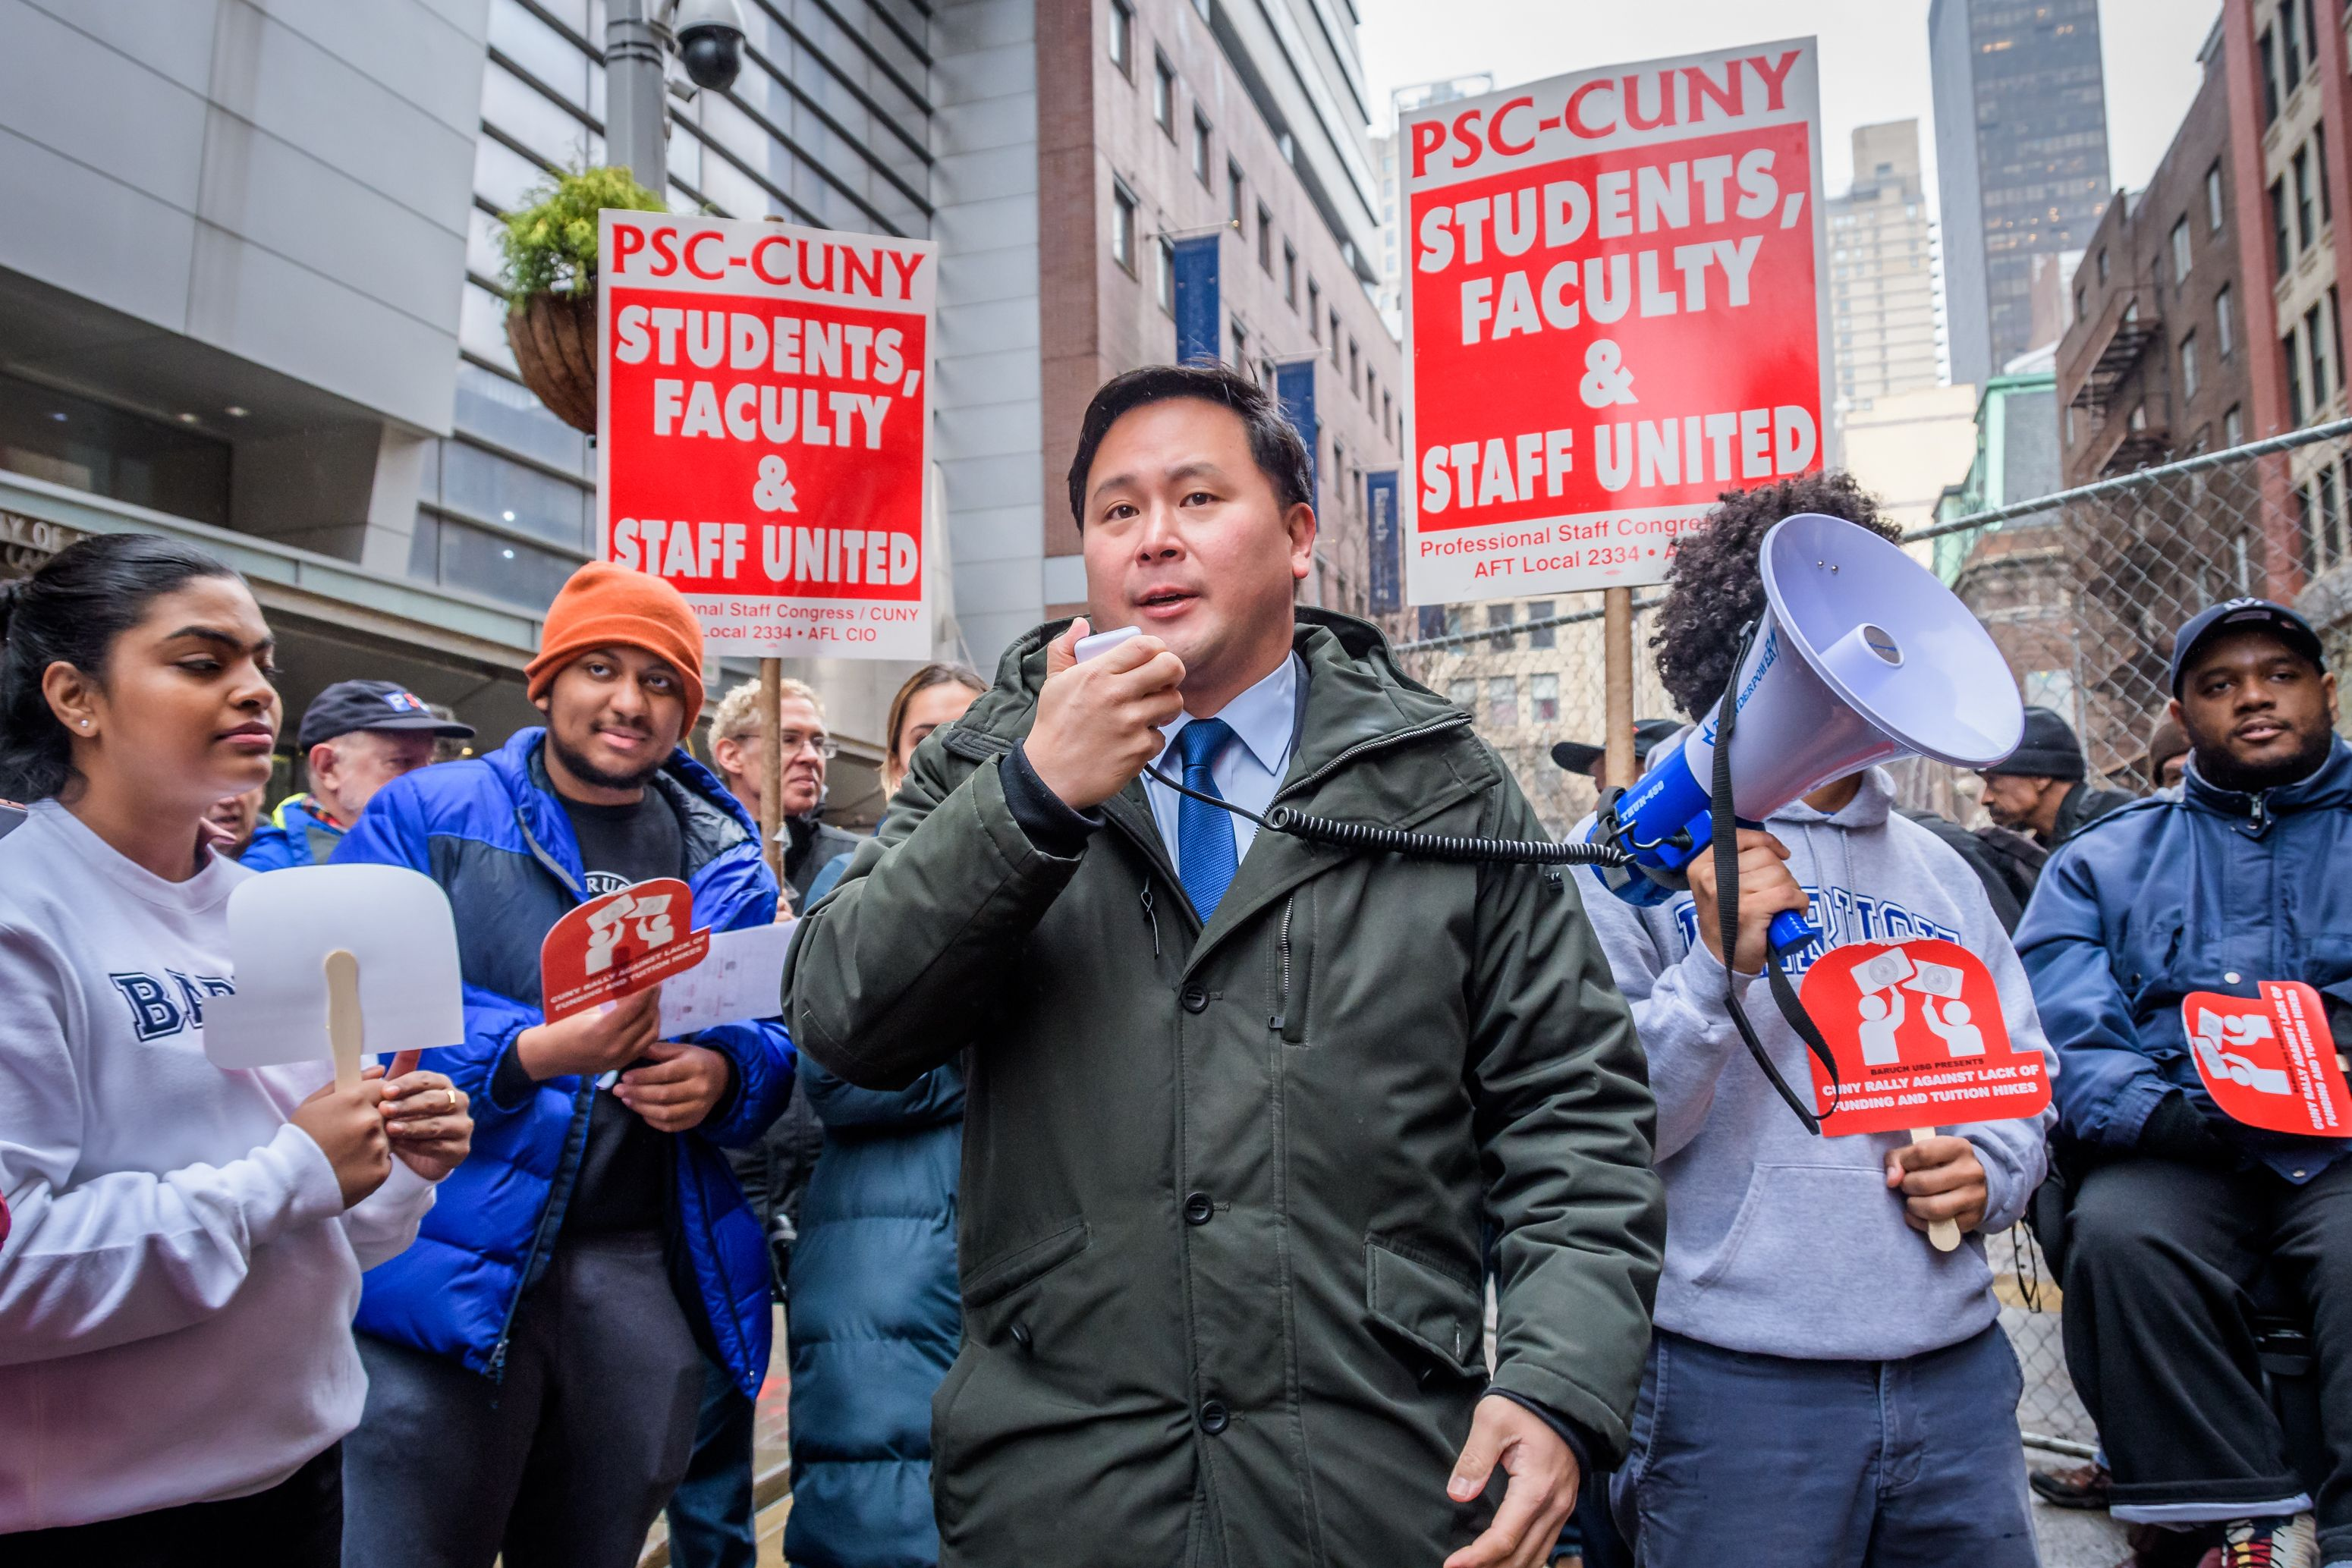 New York state Assembly member Ron Kim, whose uncle is believed to have died of COVID-19 in a New York City nursing home, has